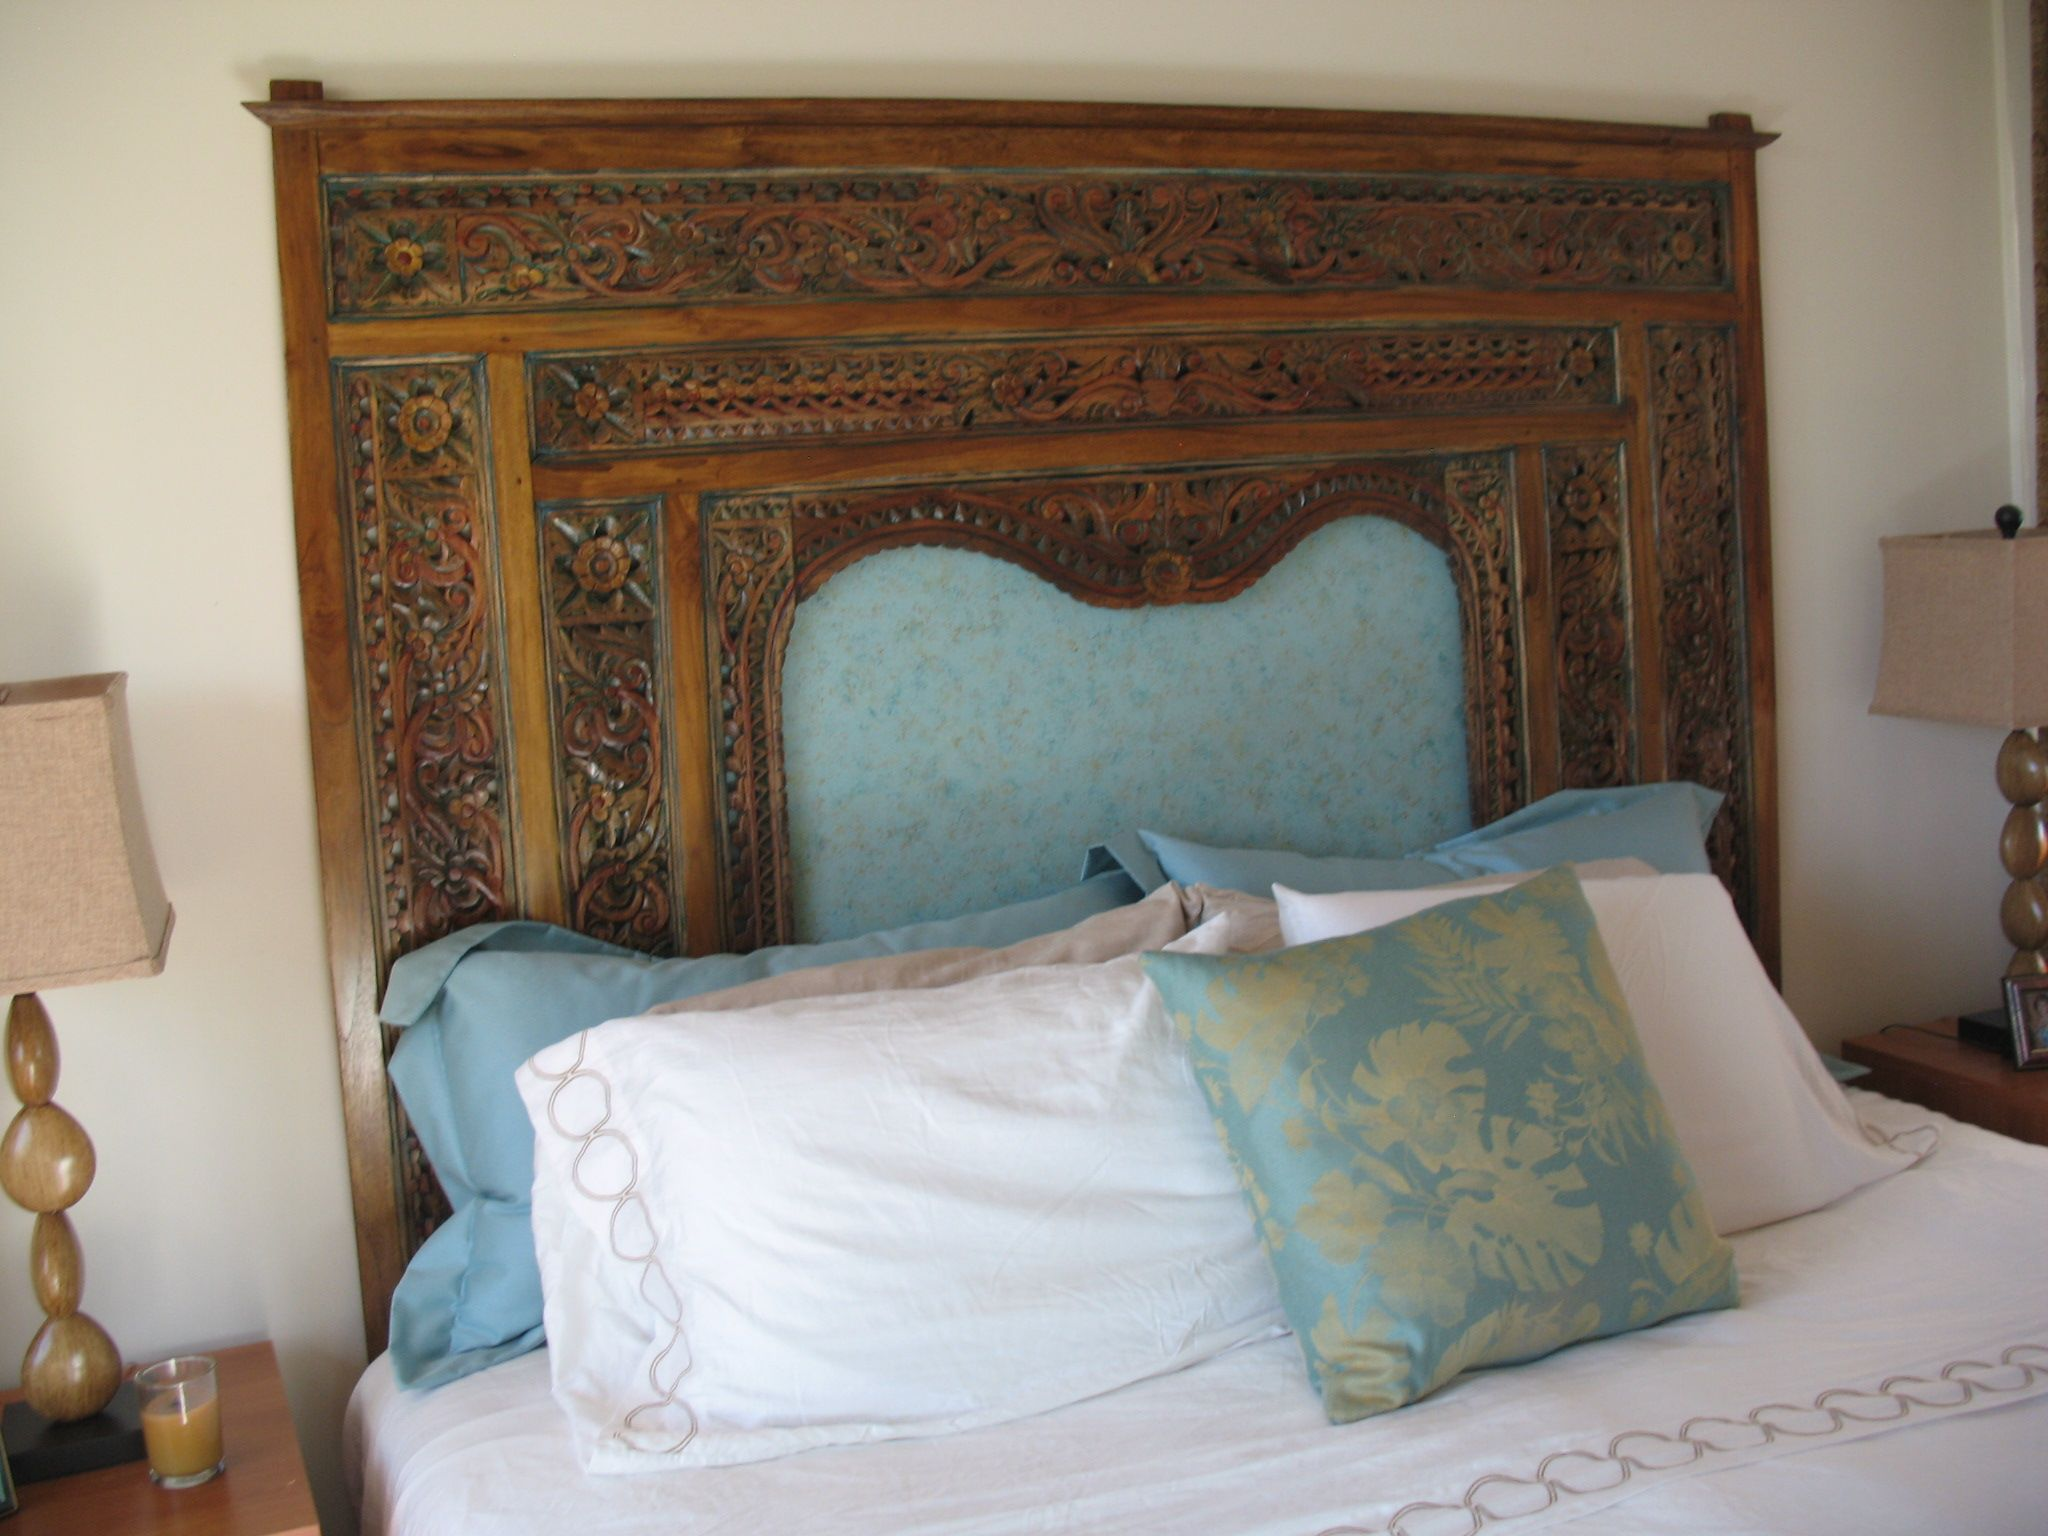 A Client S Master Bedroom Bali Style Indonesian Carved Bed Panel As Headboard From Gado Gado Indonesian Furniture Home Decor Bedding Carved Beds